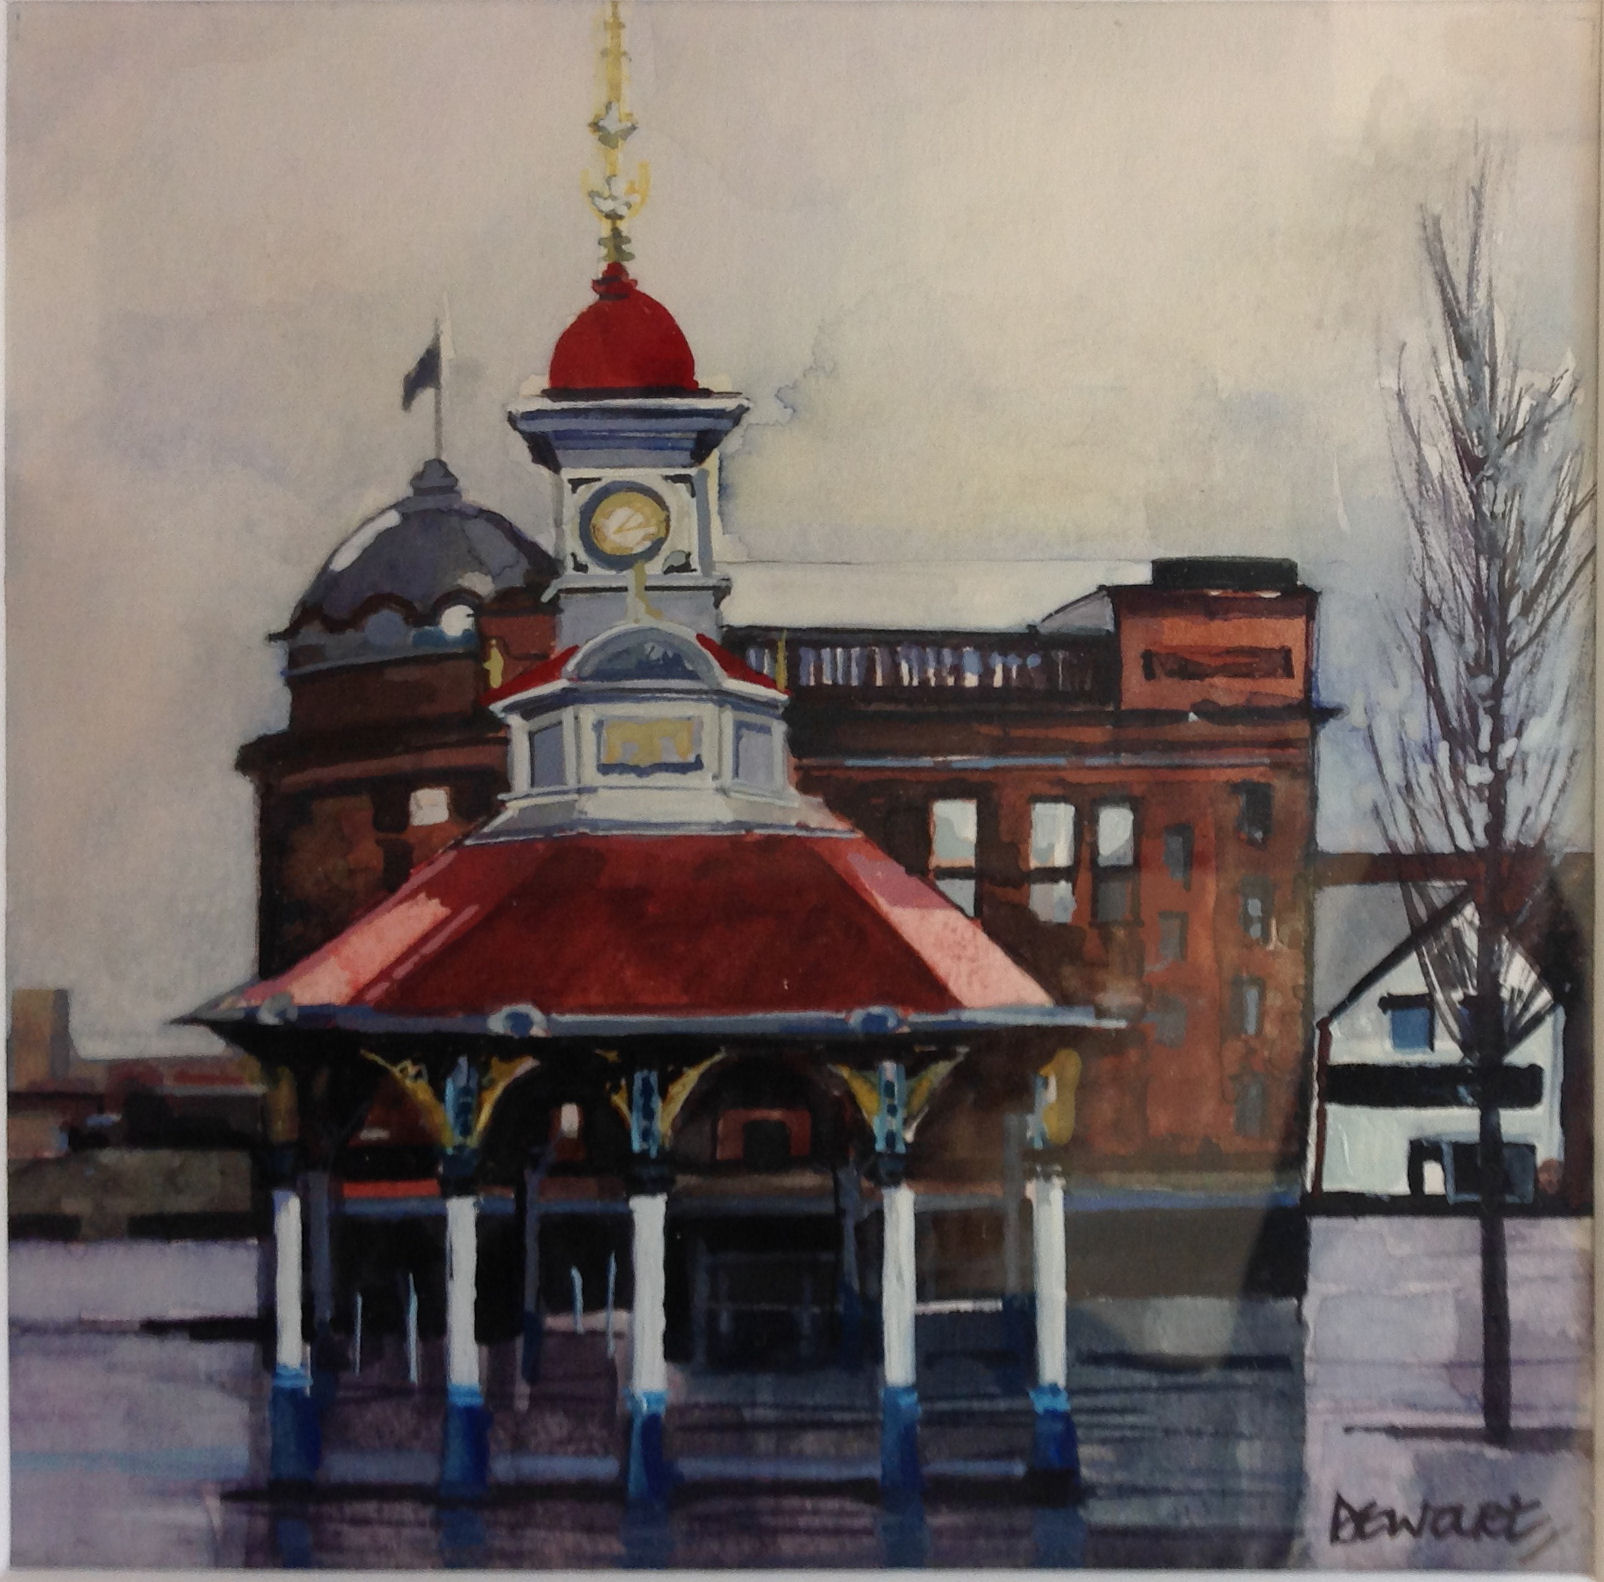 'Bridgeton Cross Umbrella' by artist Carol Dewart